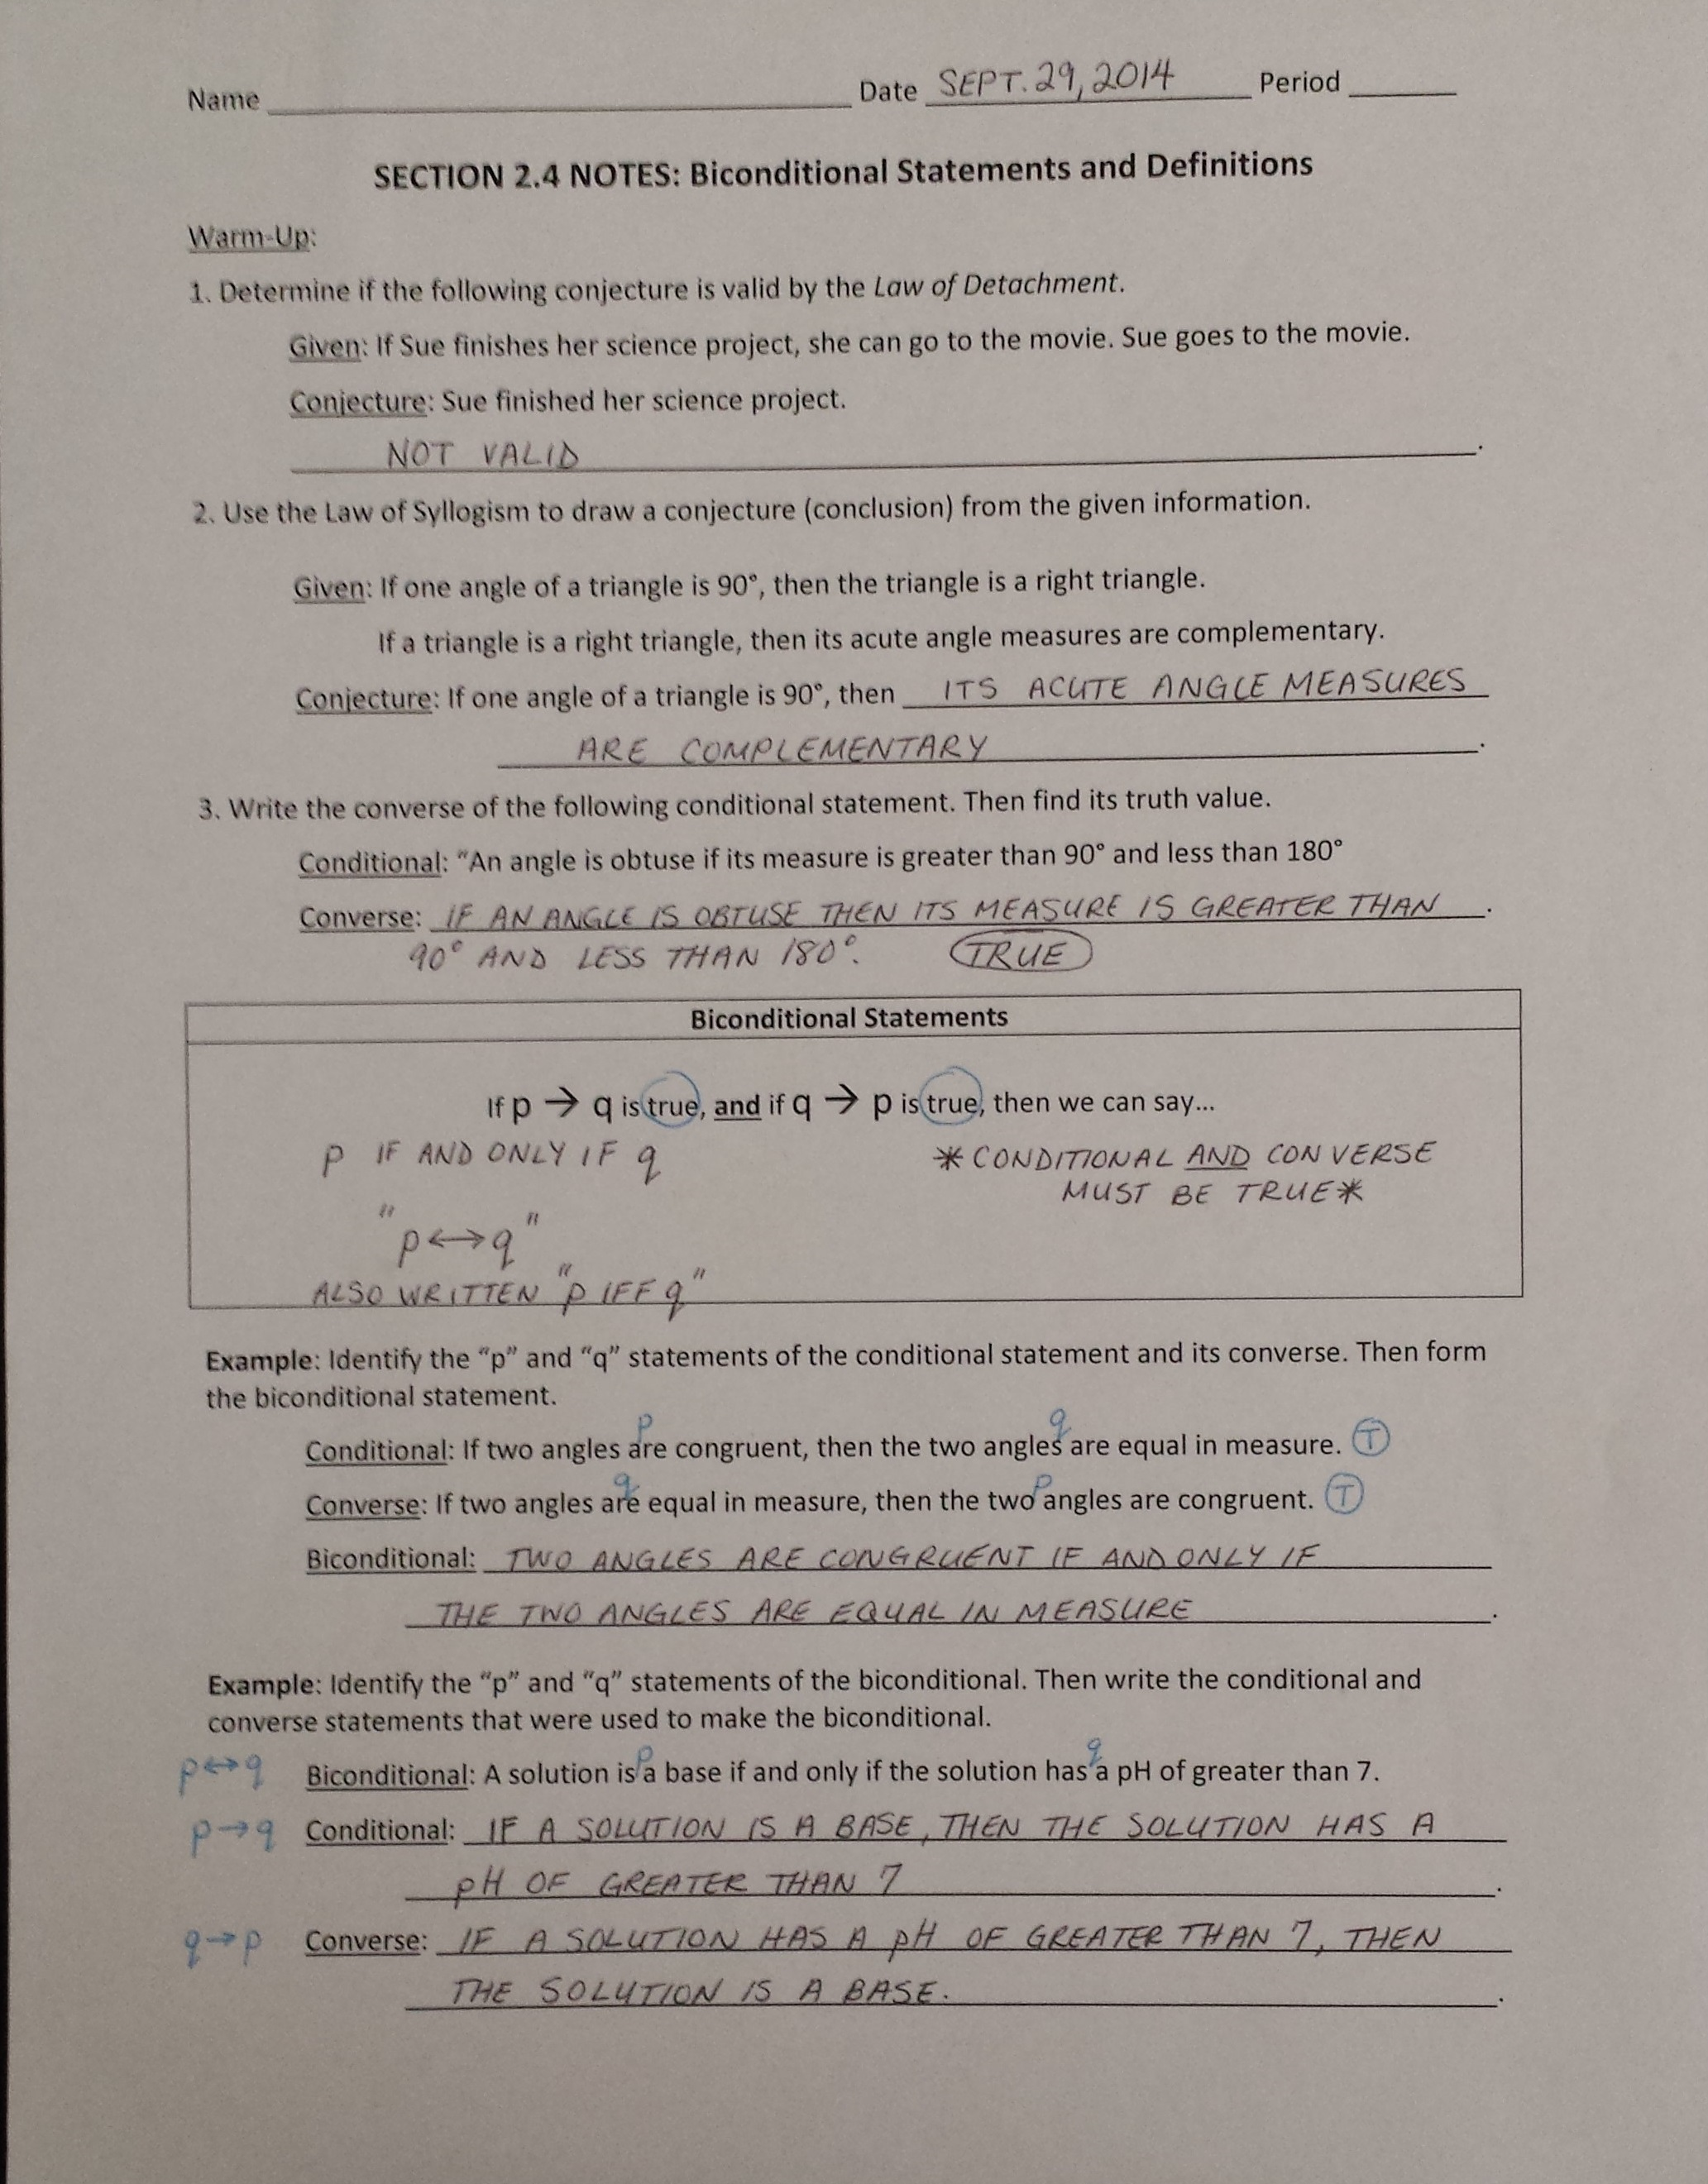 Worksheet Syllogism Worksheet mrs garnet at pvphs hw 21 2 4 worksheet 1 8 all tuesday september 30 classwork pg